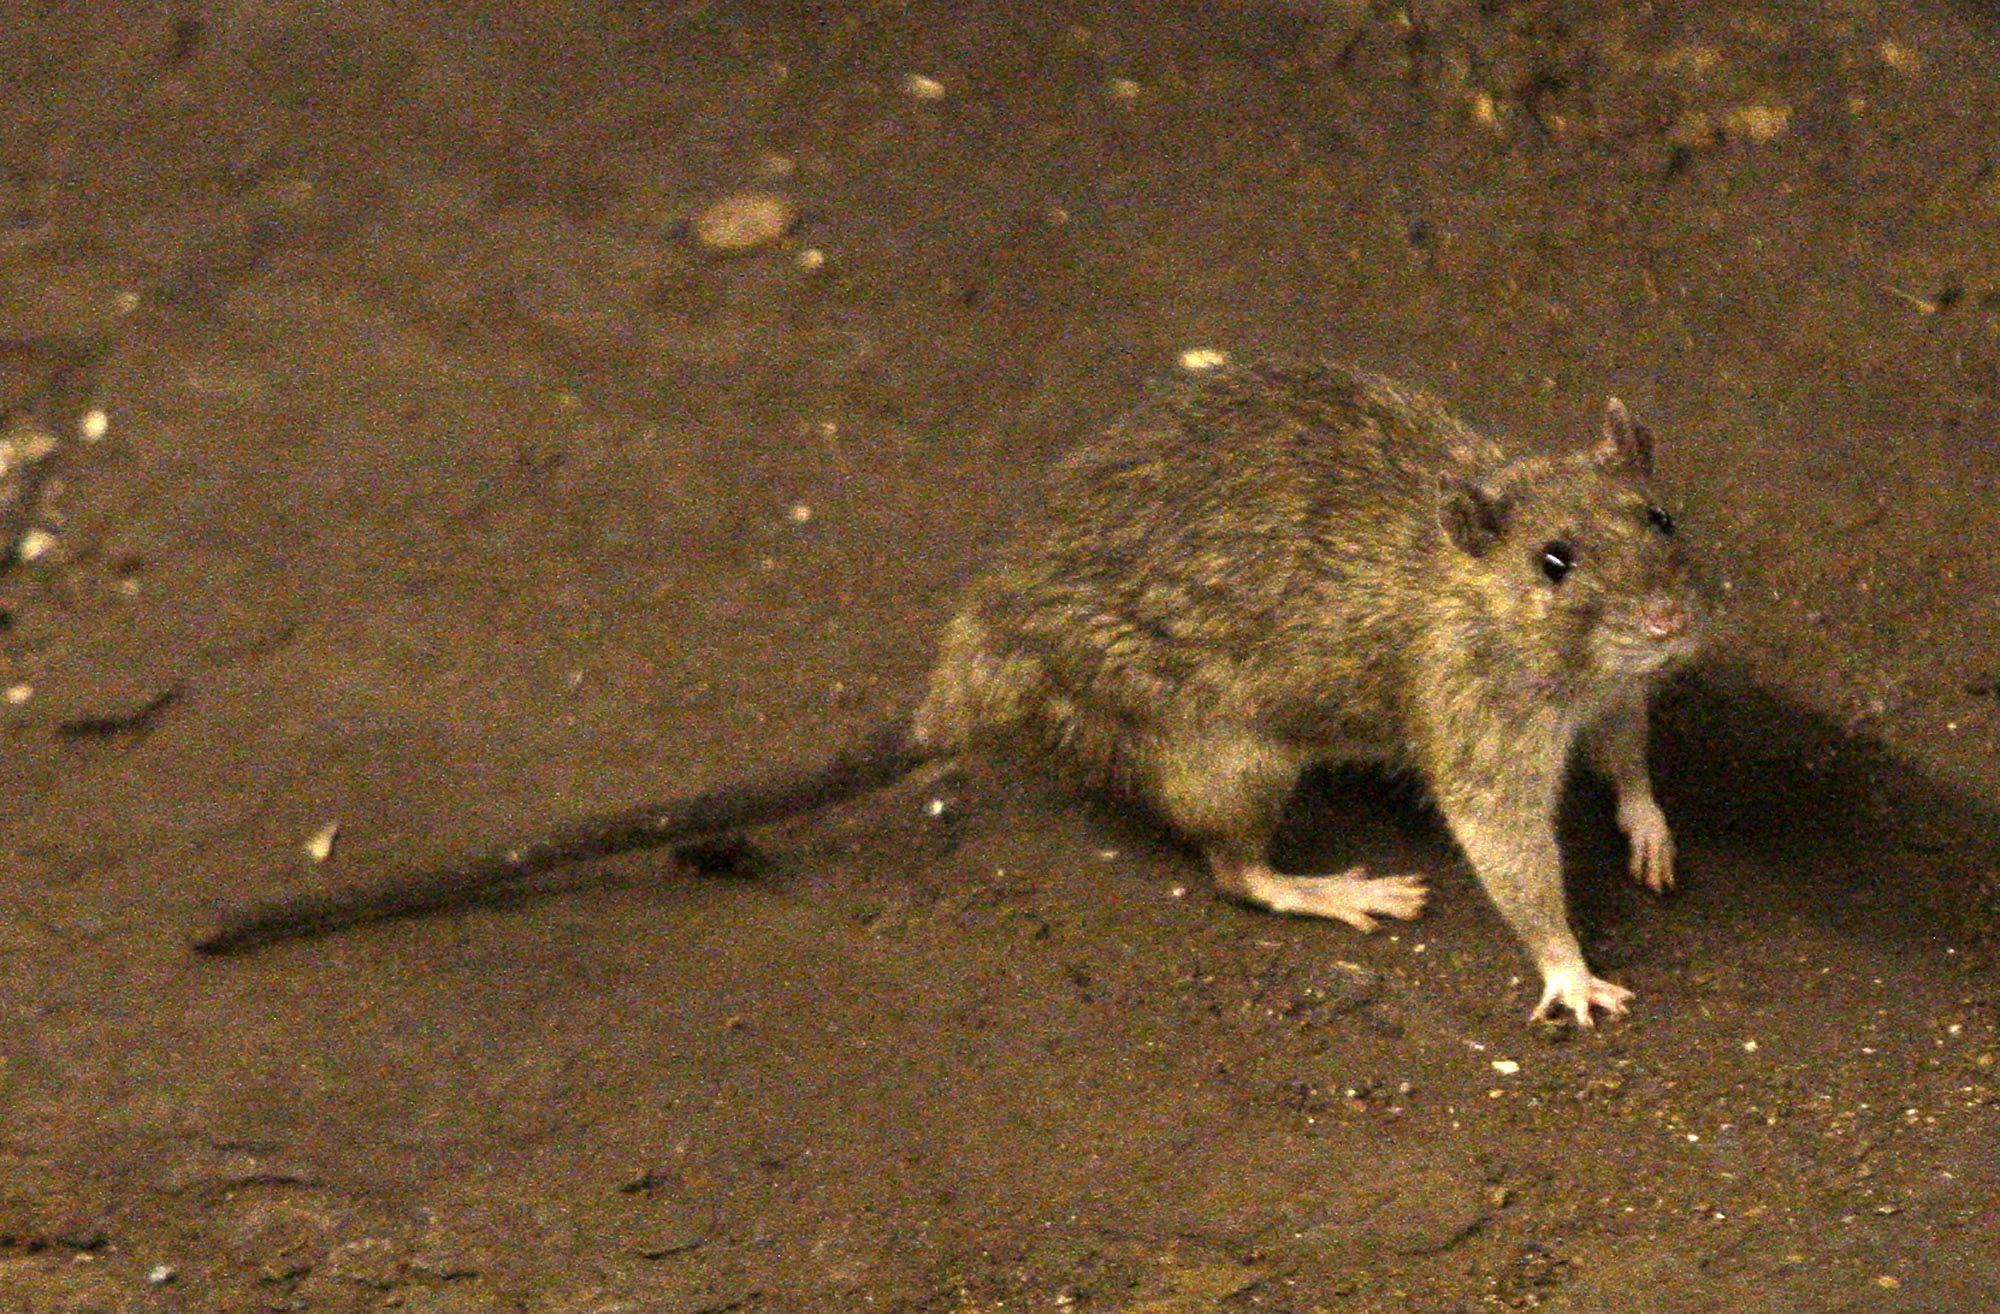 One hantavirus death in China sparks 'hysteria' over old disease